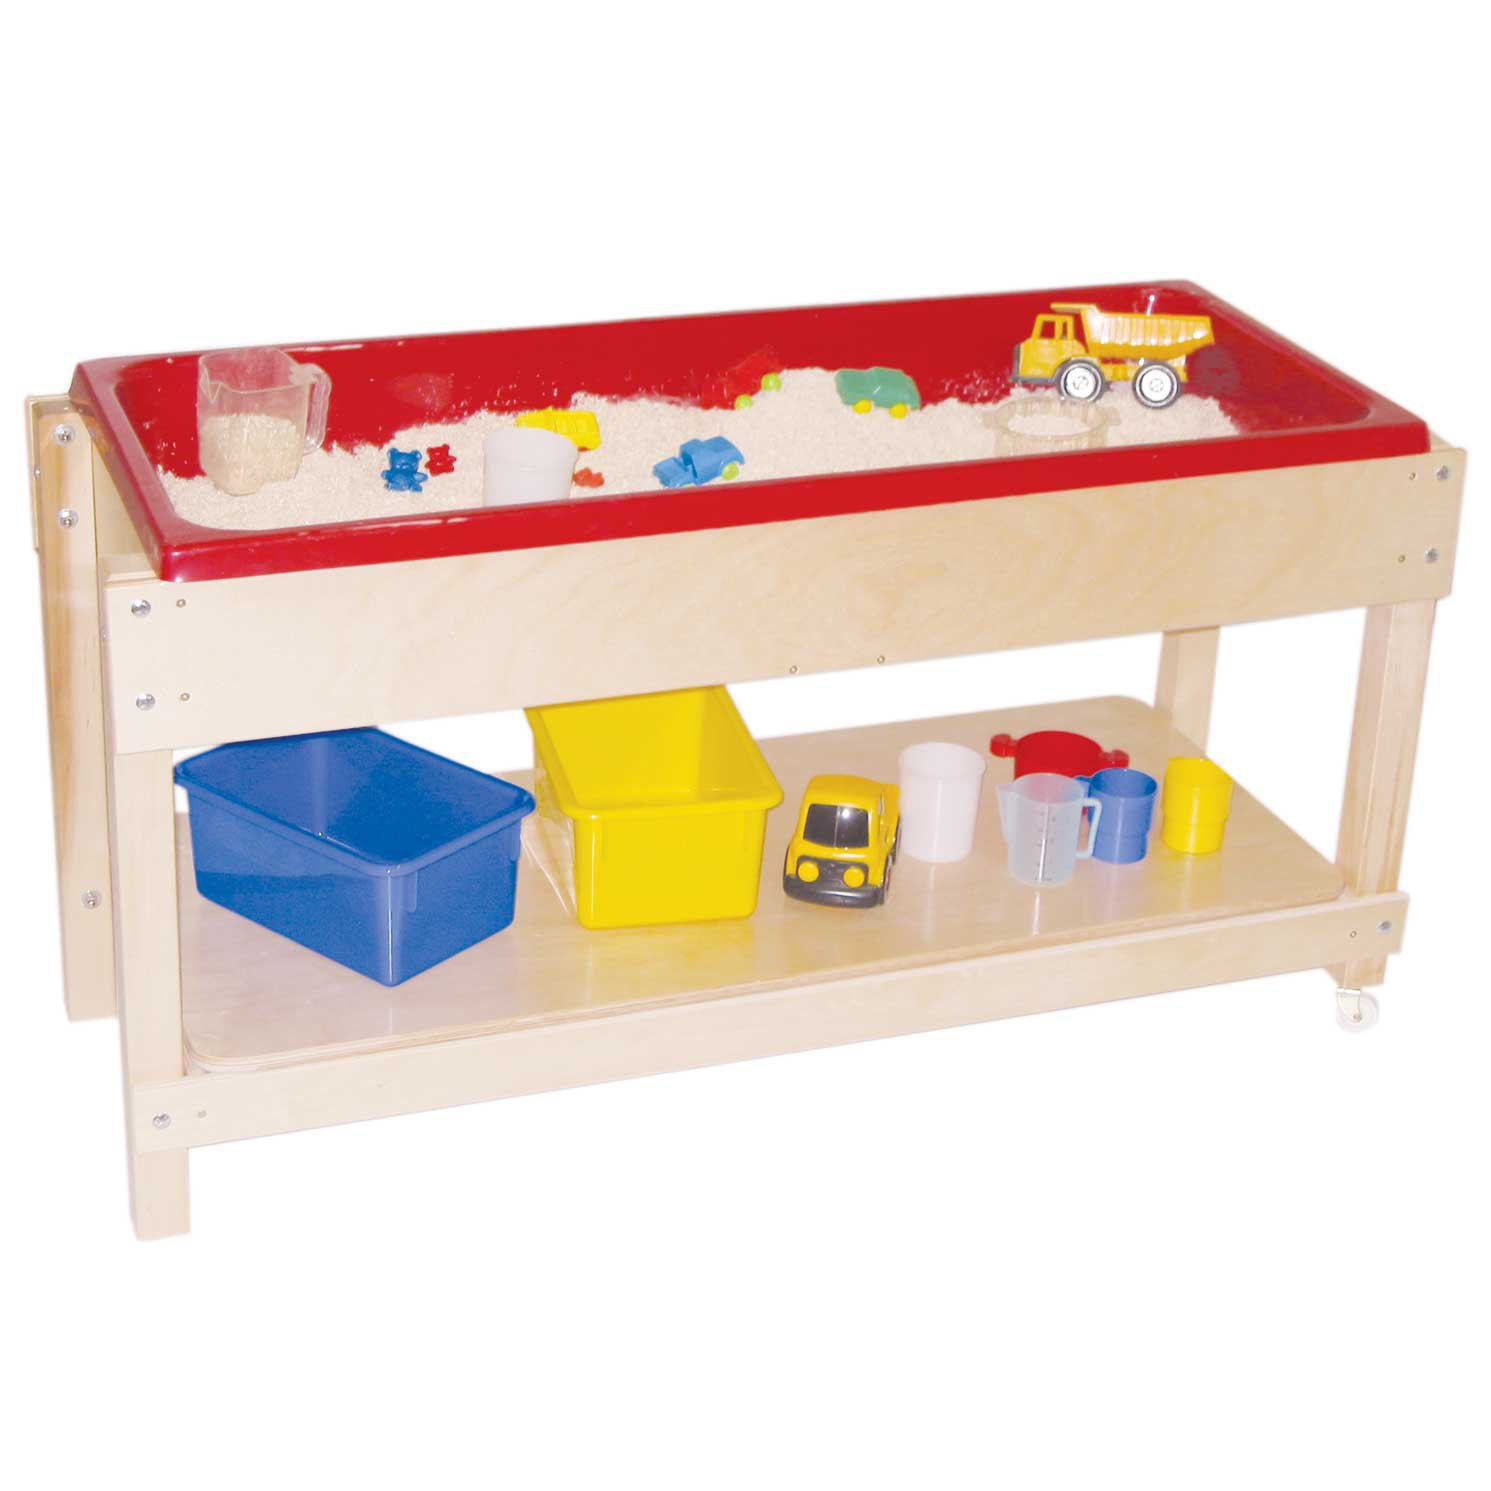 Wood Designs WD11810 Sand and Water Table with Top/Shelf by Wood Designs